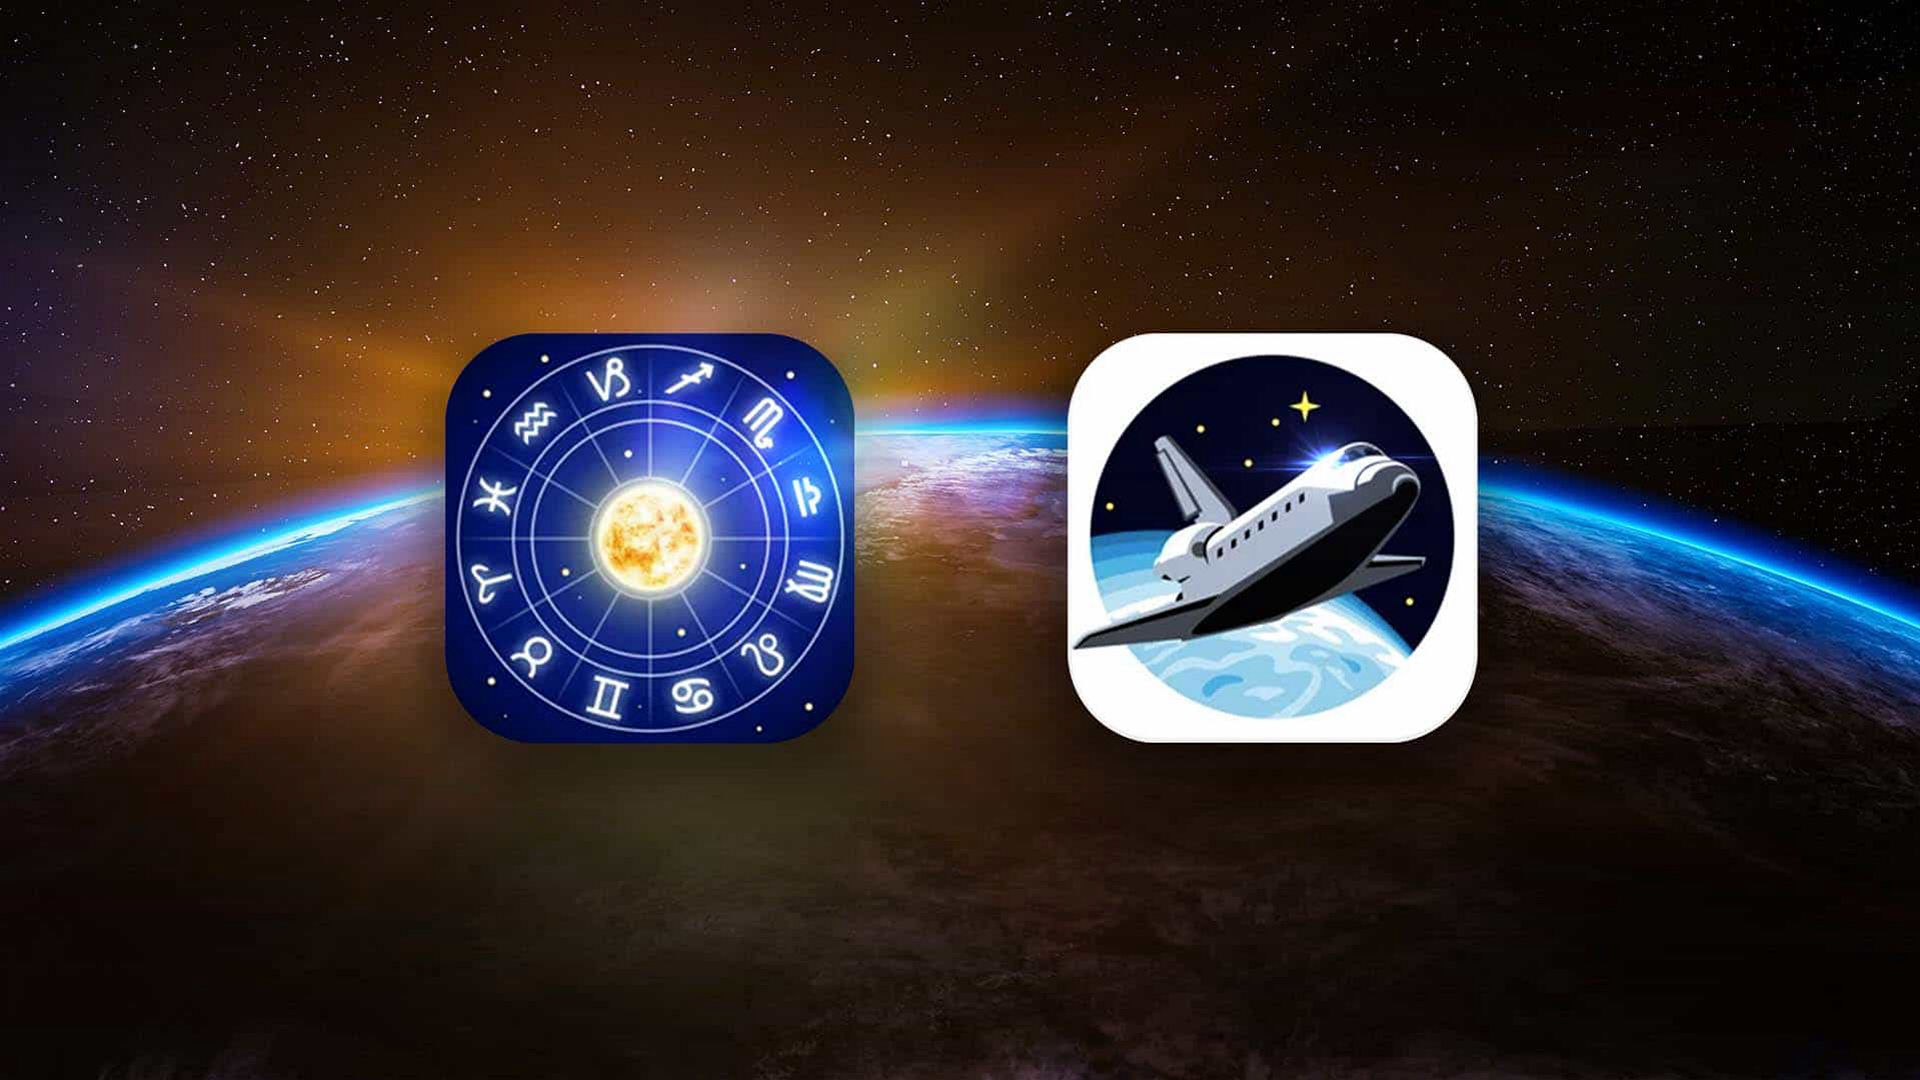 Zodiac Constellations ans Space Museum Icons